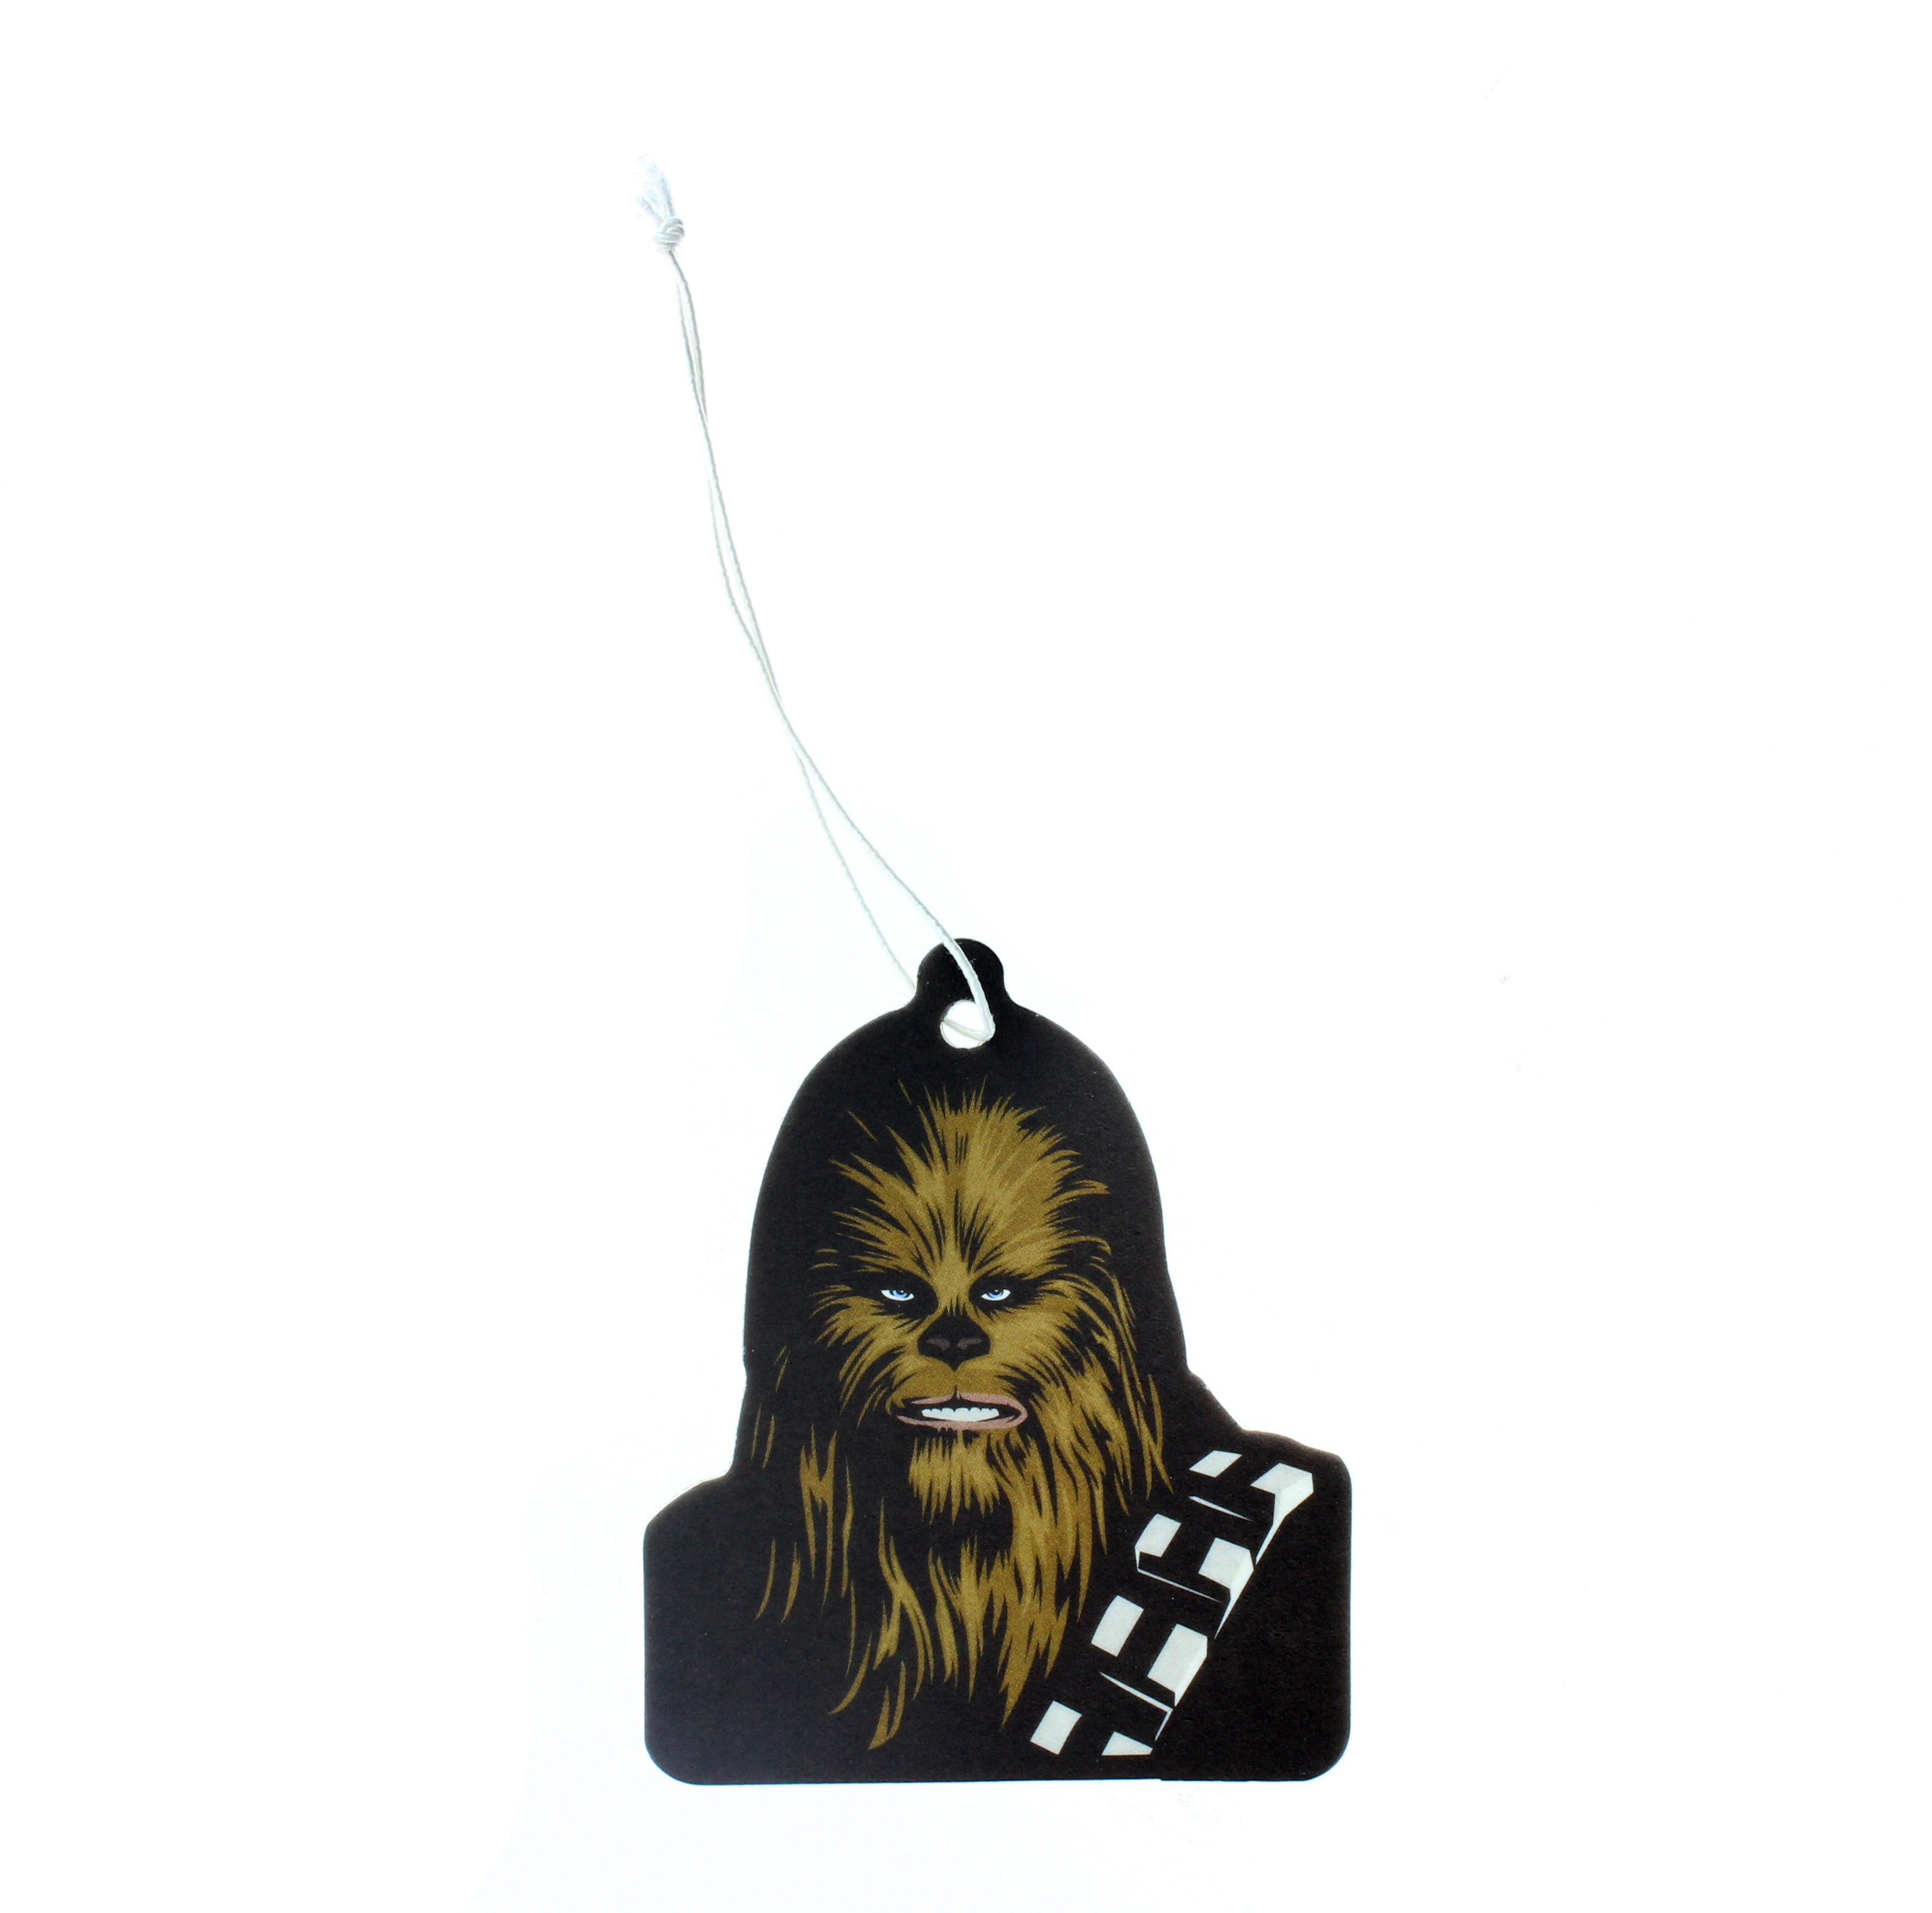 SW Paper Air Freshener Chewbacca - New Car Scent Image